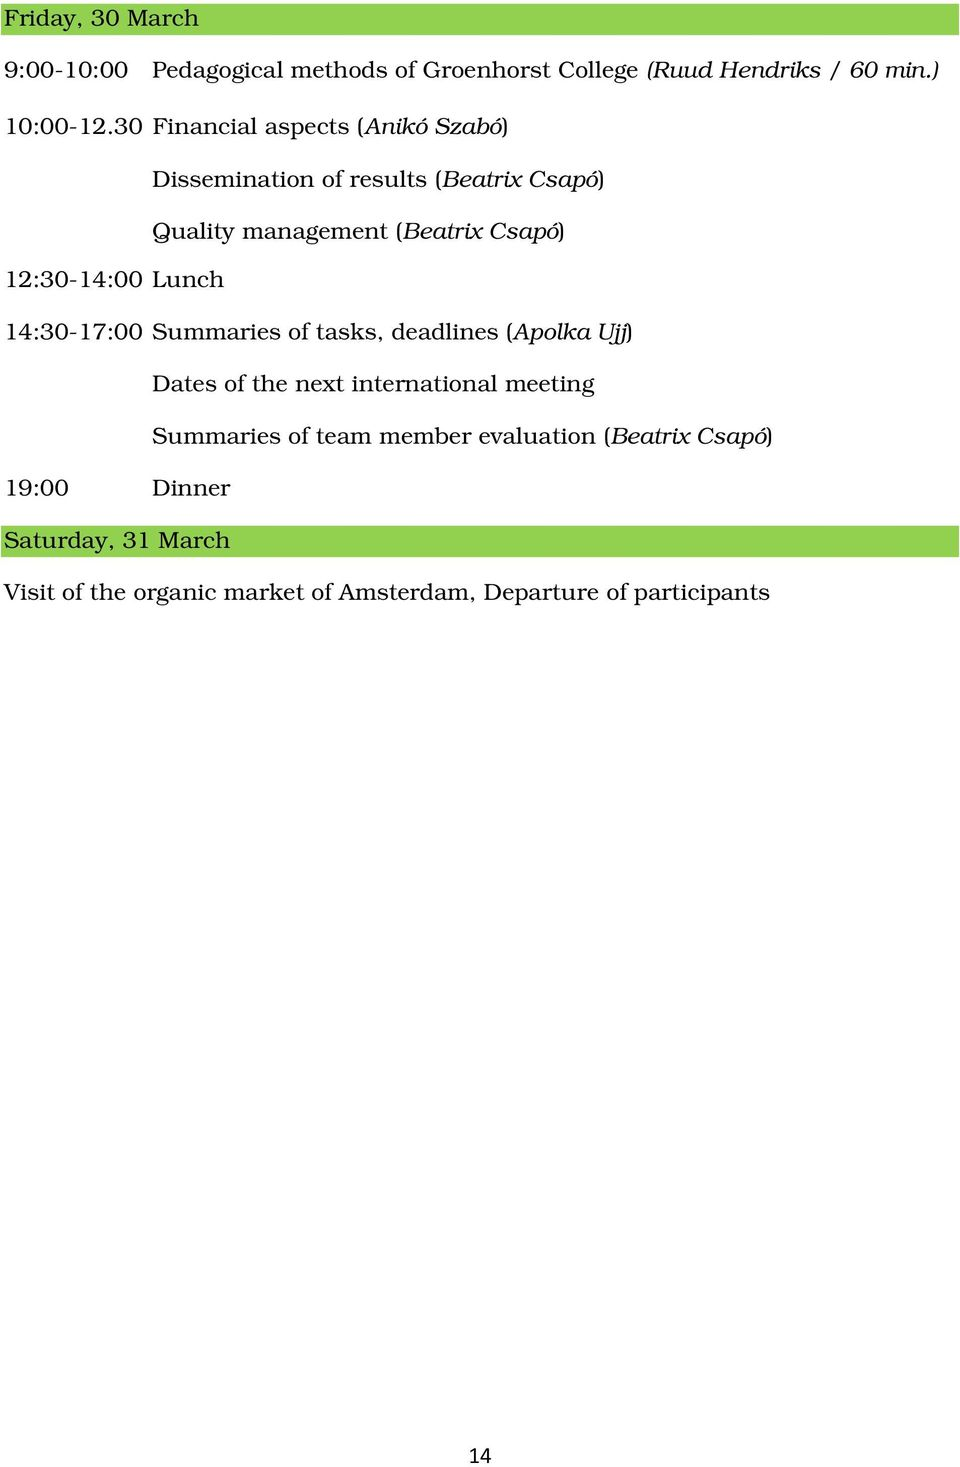 12:30-14:00 Lunch 14:30-17:00 Summaries of tasks, deadlines (Apolka Ujj) Dates of the next international meeting